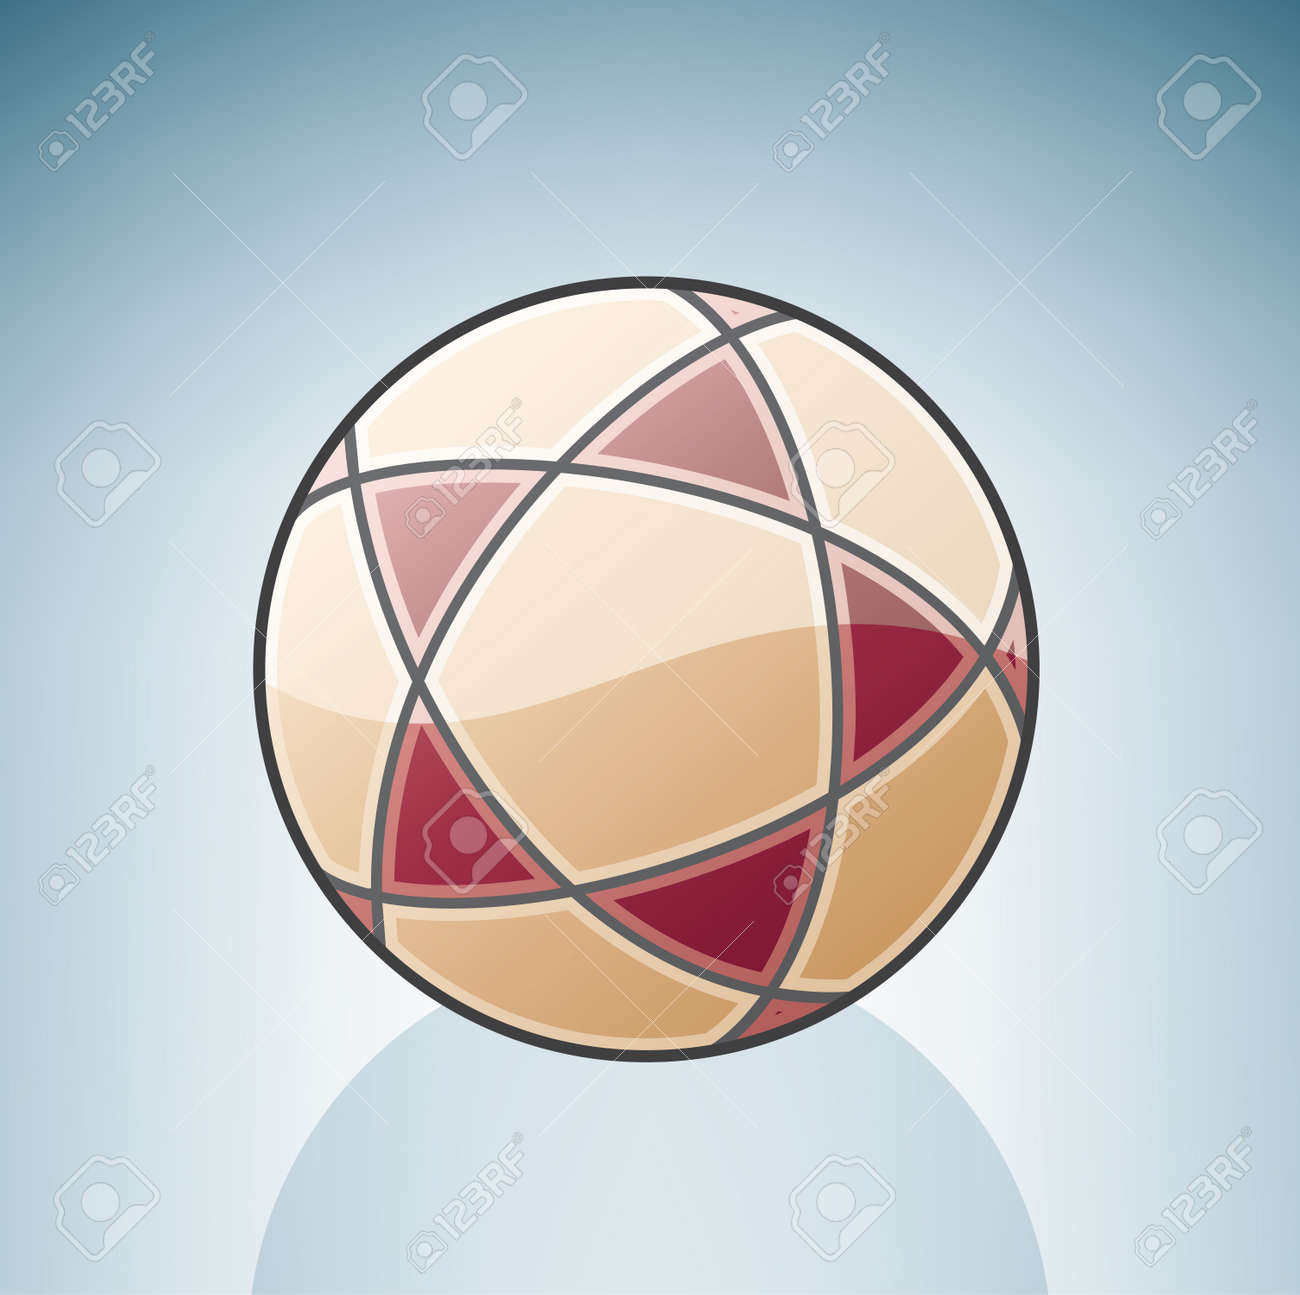 Volleyball Ball Stock Vector - 7337088